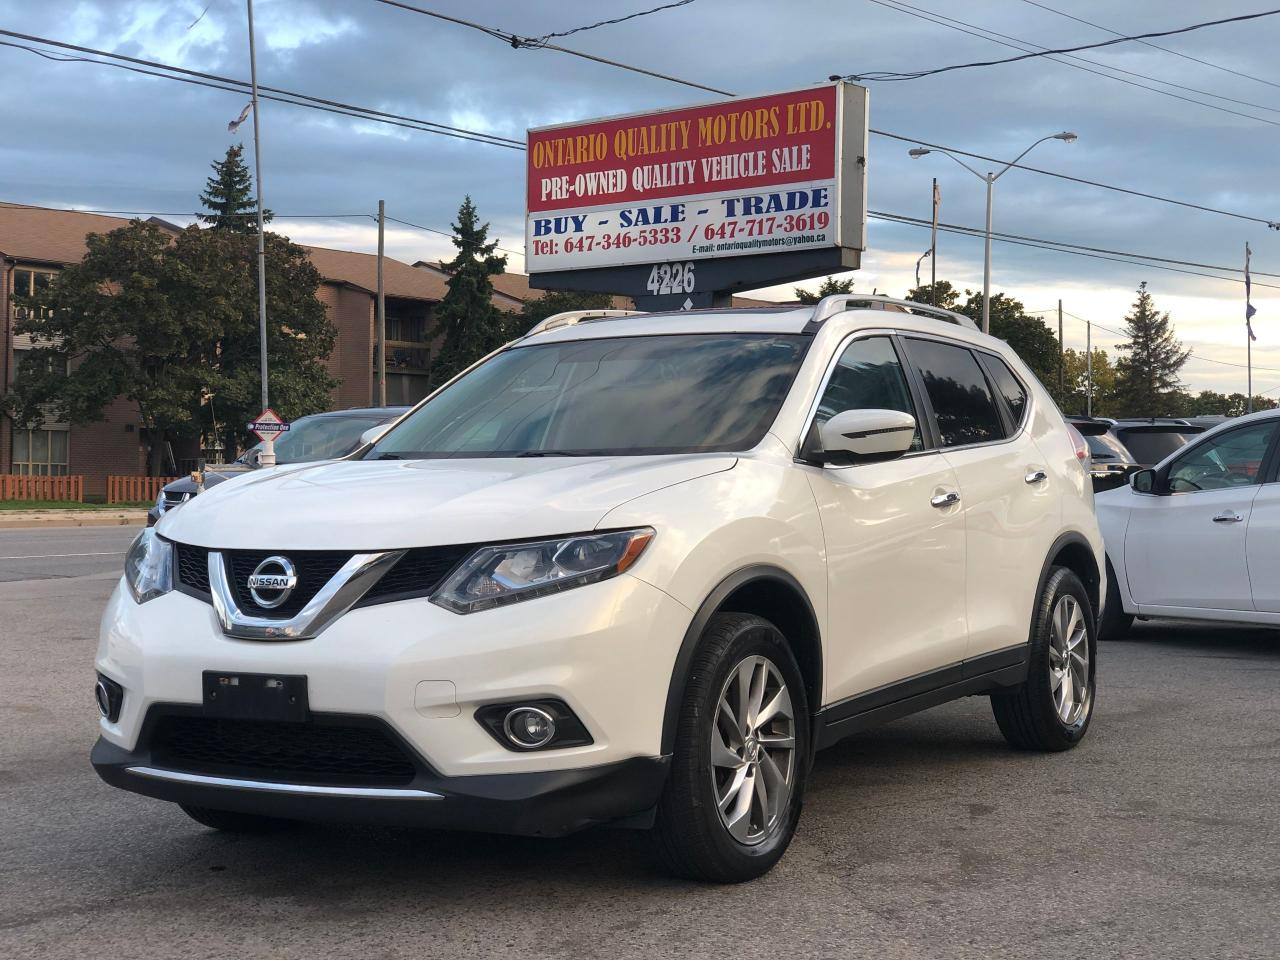 Ontario Quality Motors >> 2014 Nissan Rogue Ontario Quality Motors Ltd